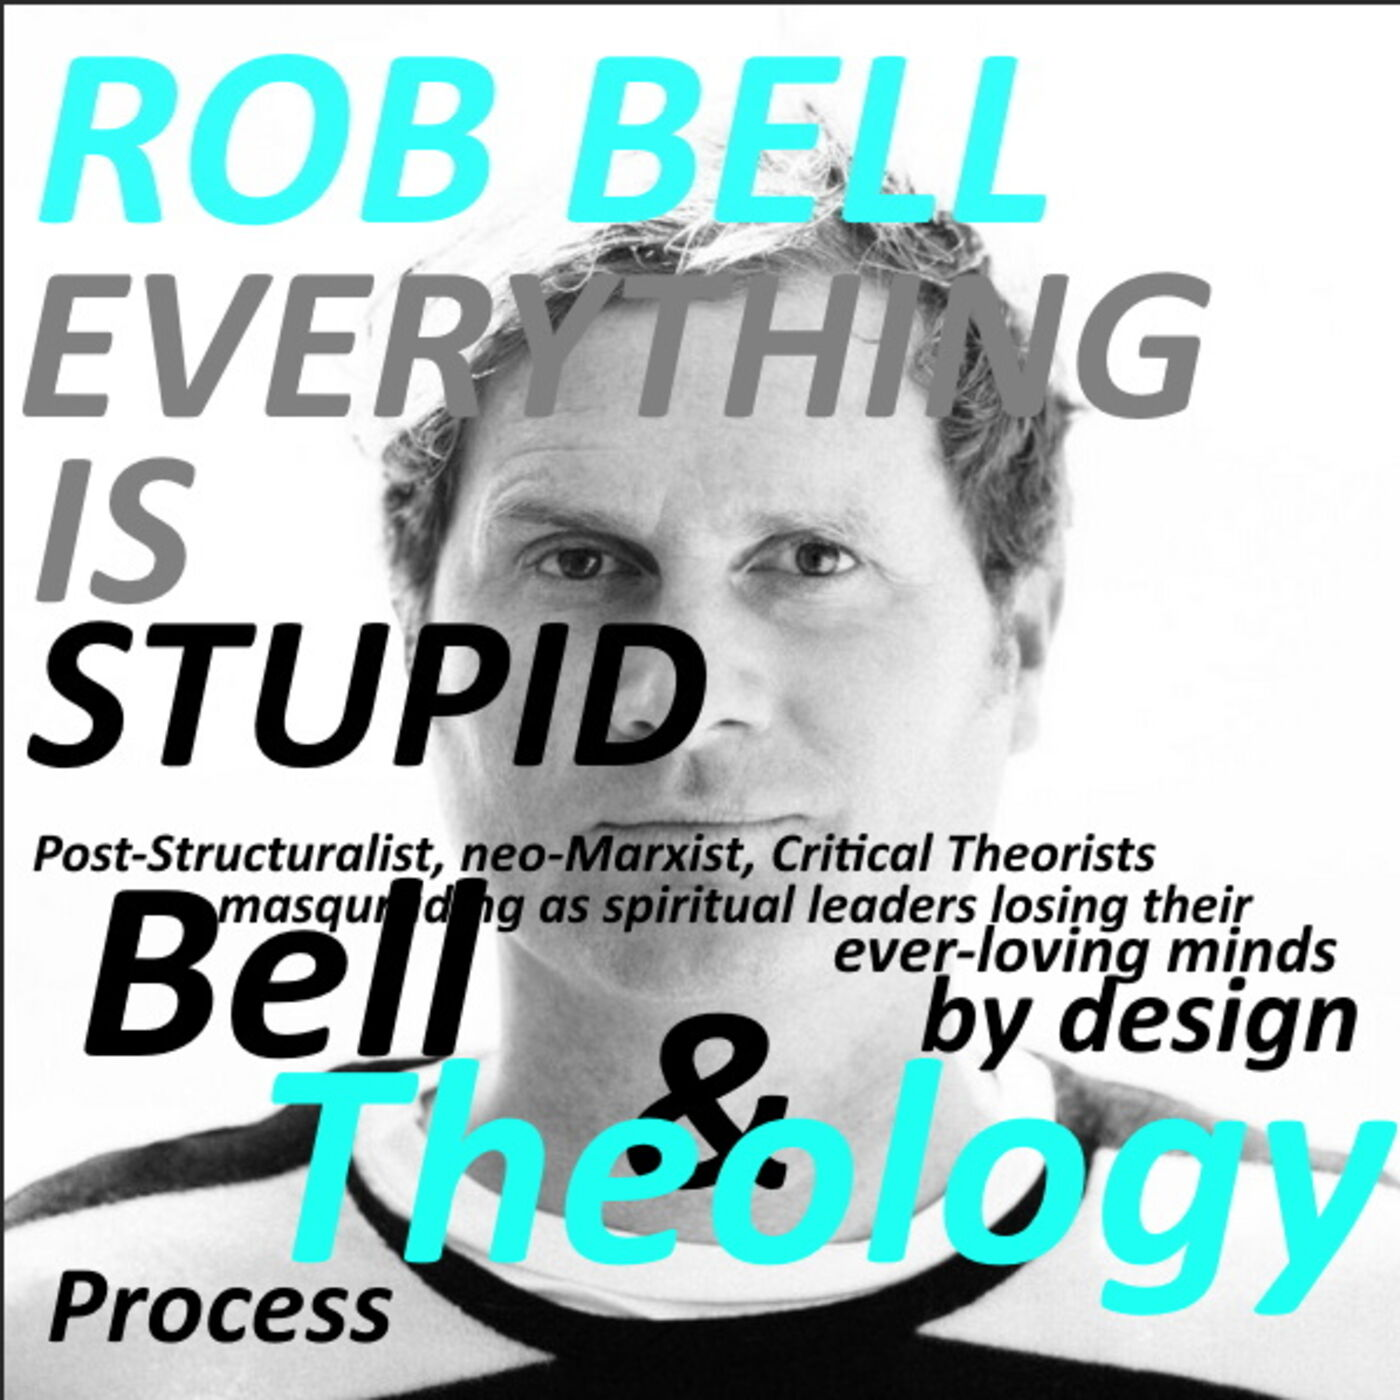 Rob Bell in Process